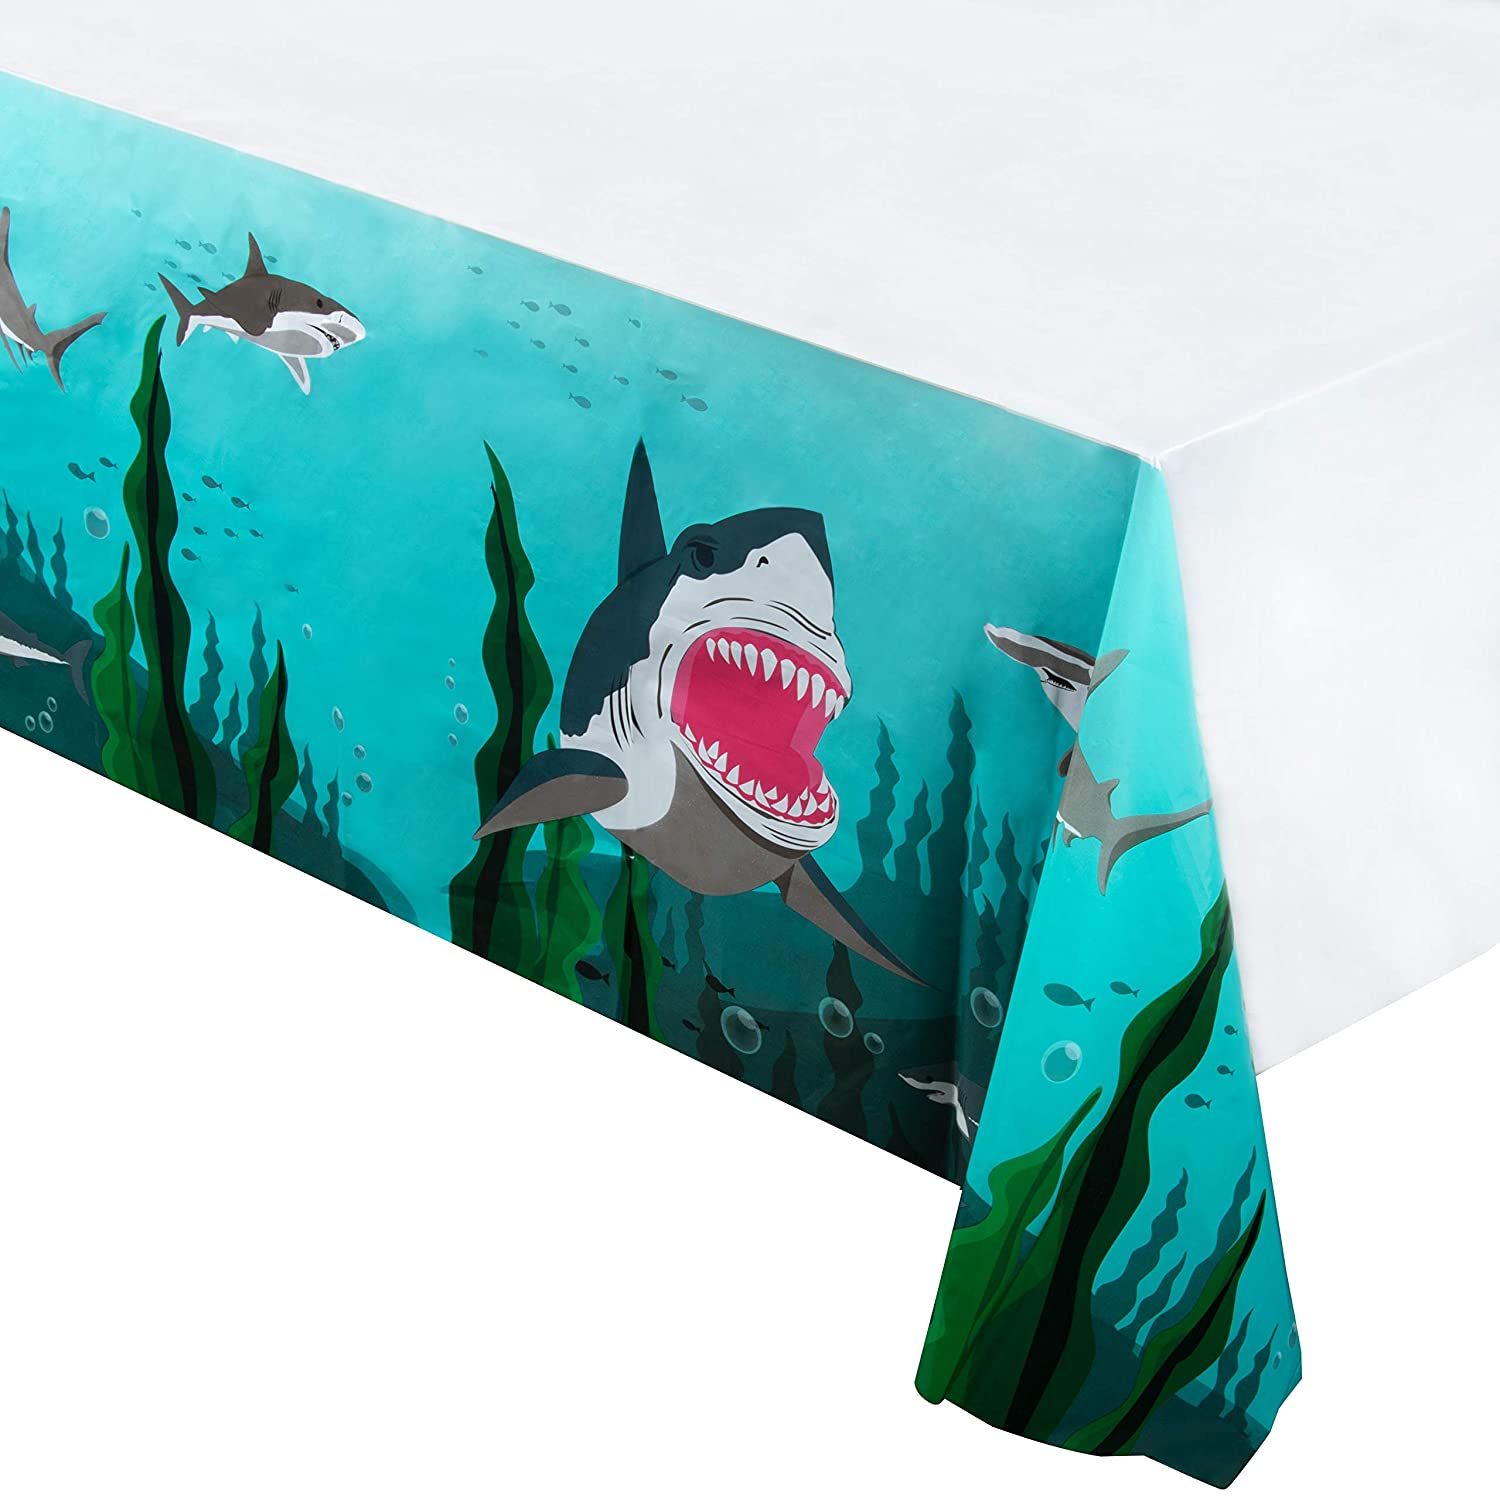 Shark Plastic Tablecloth - 3-Pack 54 x 108-Inch Rectangular Disposable Table Cover, Ocean Theme Party Supplies for Birthdays, Shark Week Events, Cyan Blue, 4.5 x 9 Feet